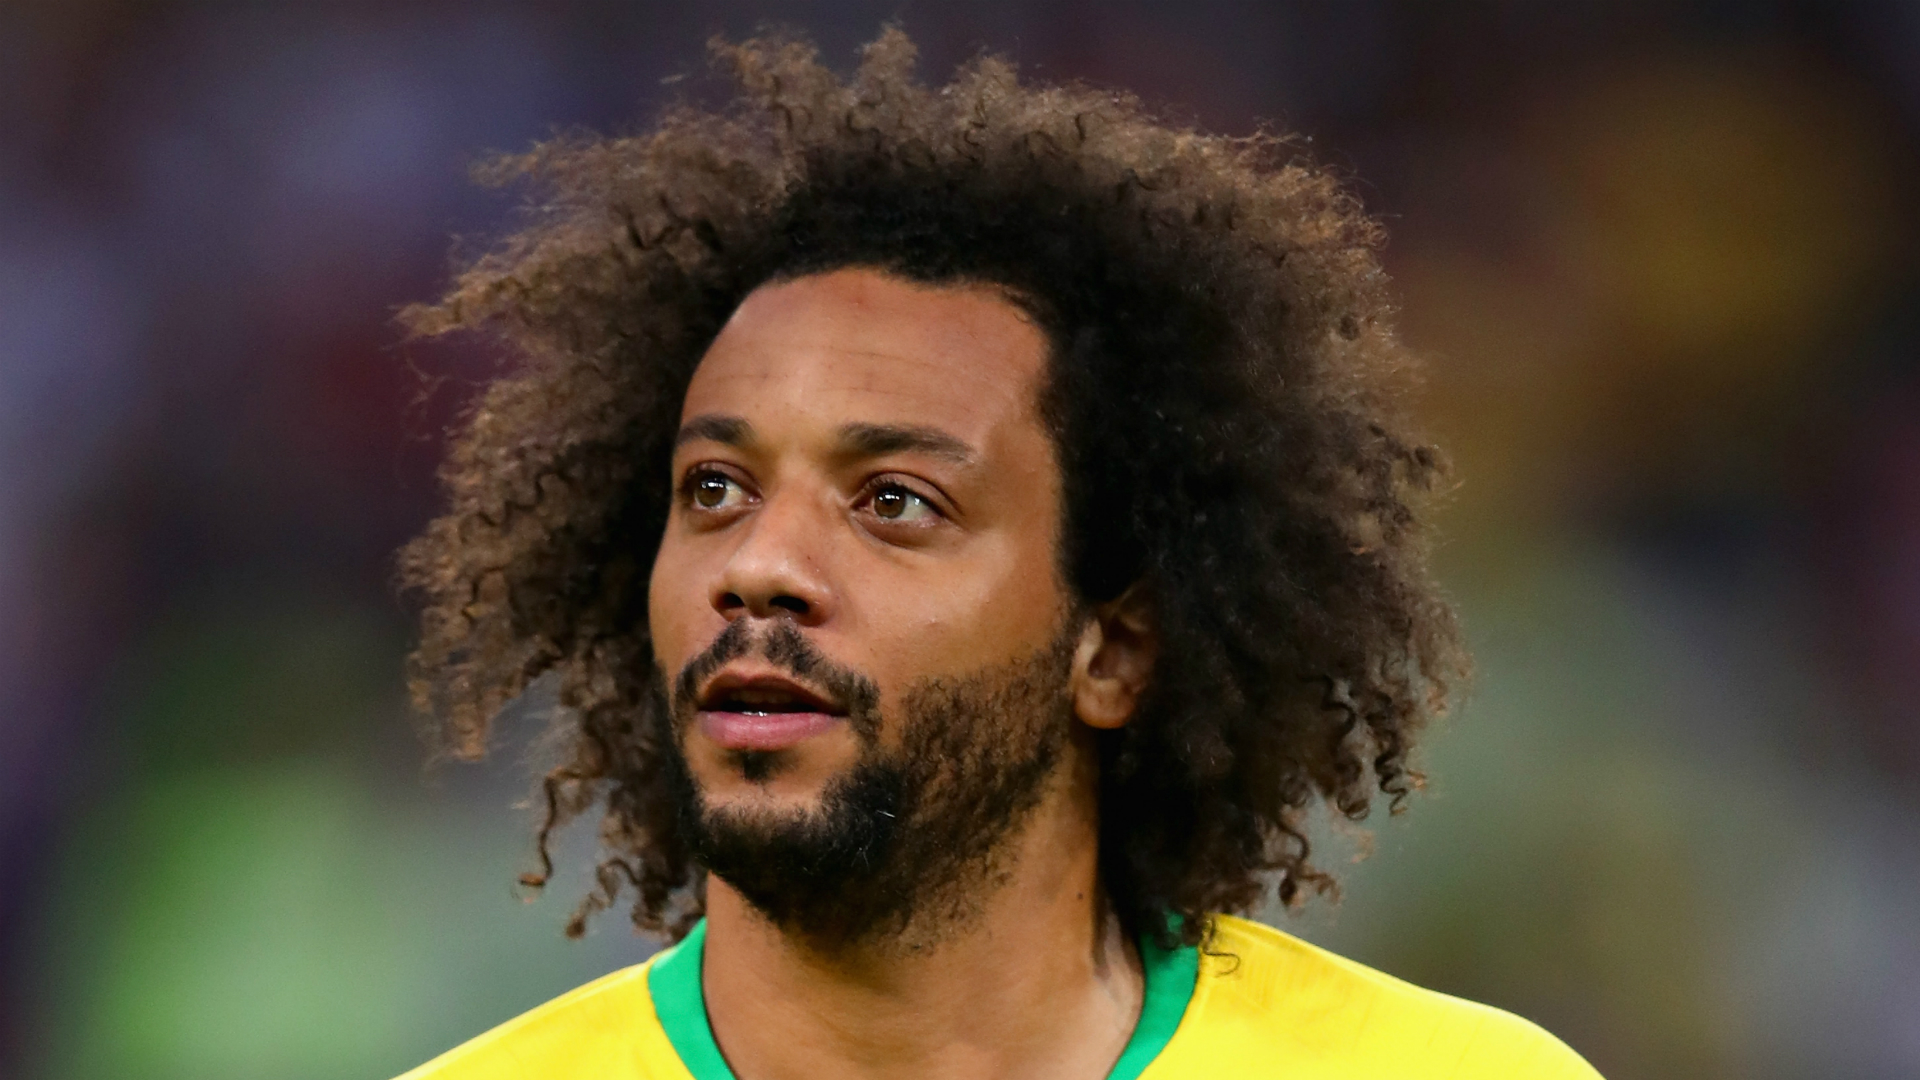 Marcelo completes training and looks ready to face Mexico